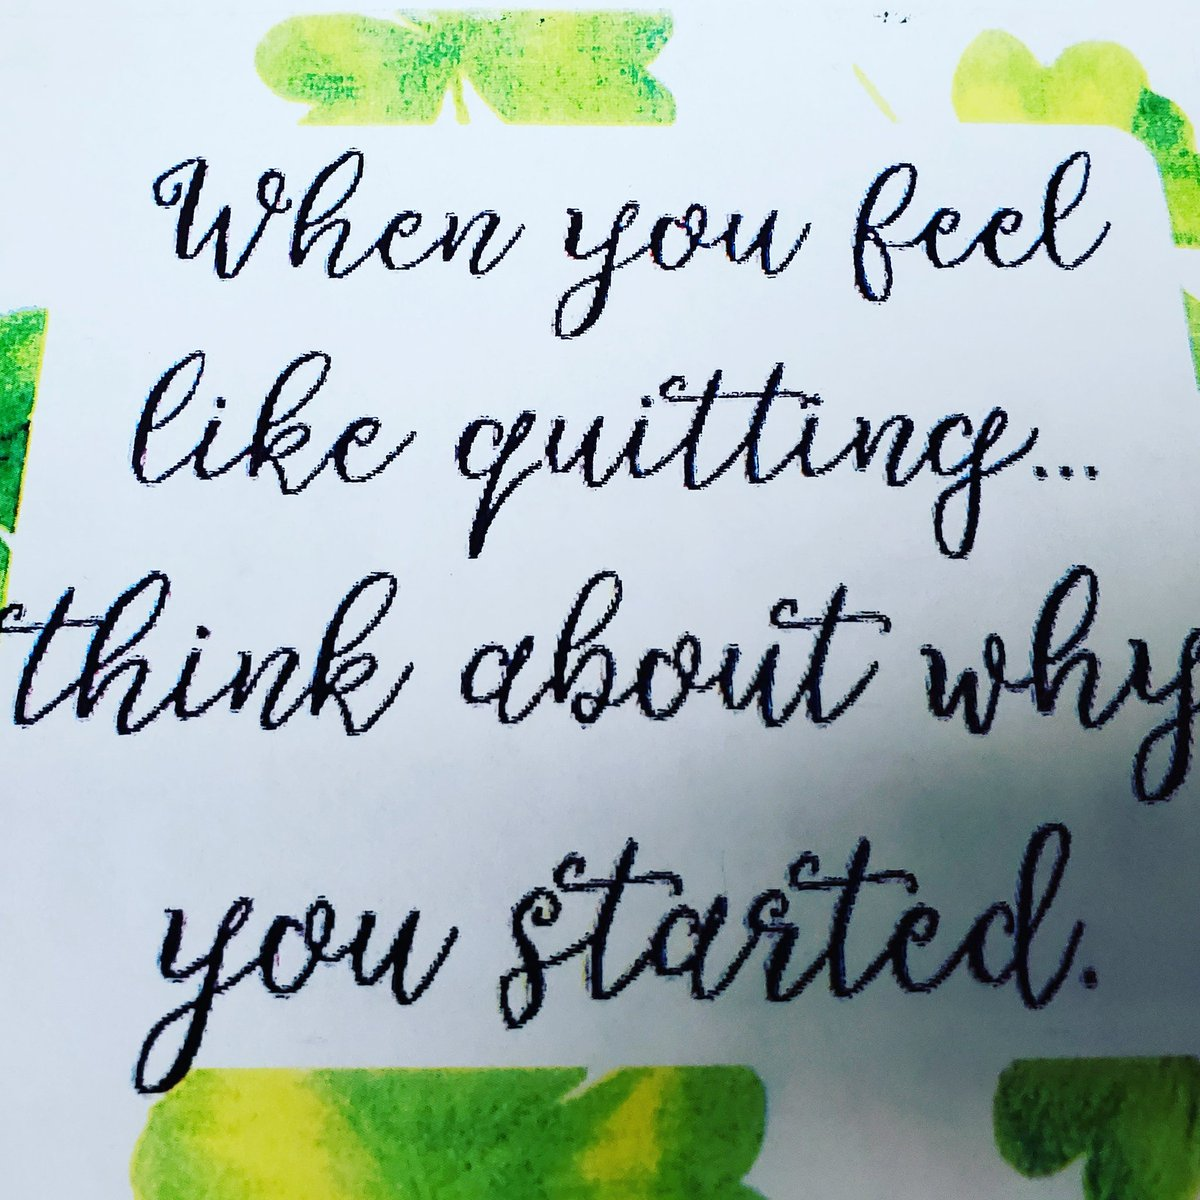 I noticed this on my March calendar on my desk at work today and thought it fit well with my mantra, #ISitIQuit. Hits home for sure!   #OperationTransformation #WWConnect #WeightWatchers #WW #WeightLoss #Health #Fitness #Workout #Workouts #Gym #GymLife #GymTime #WorkoutVideospic.twitter.com/PRwB73Qsc9